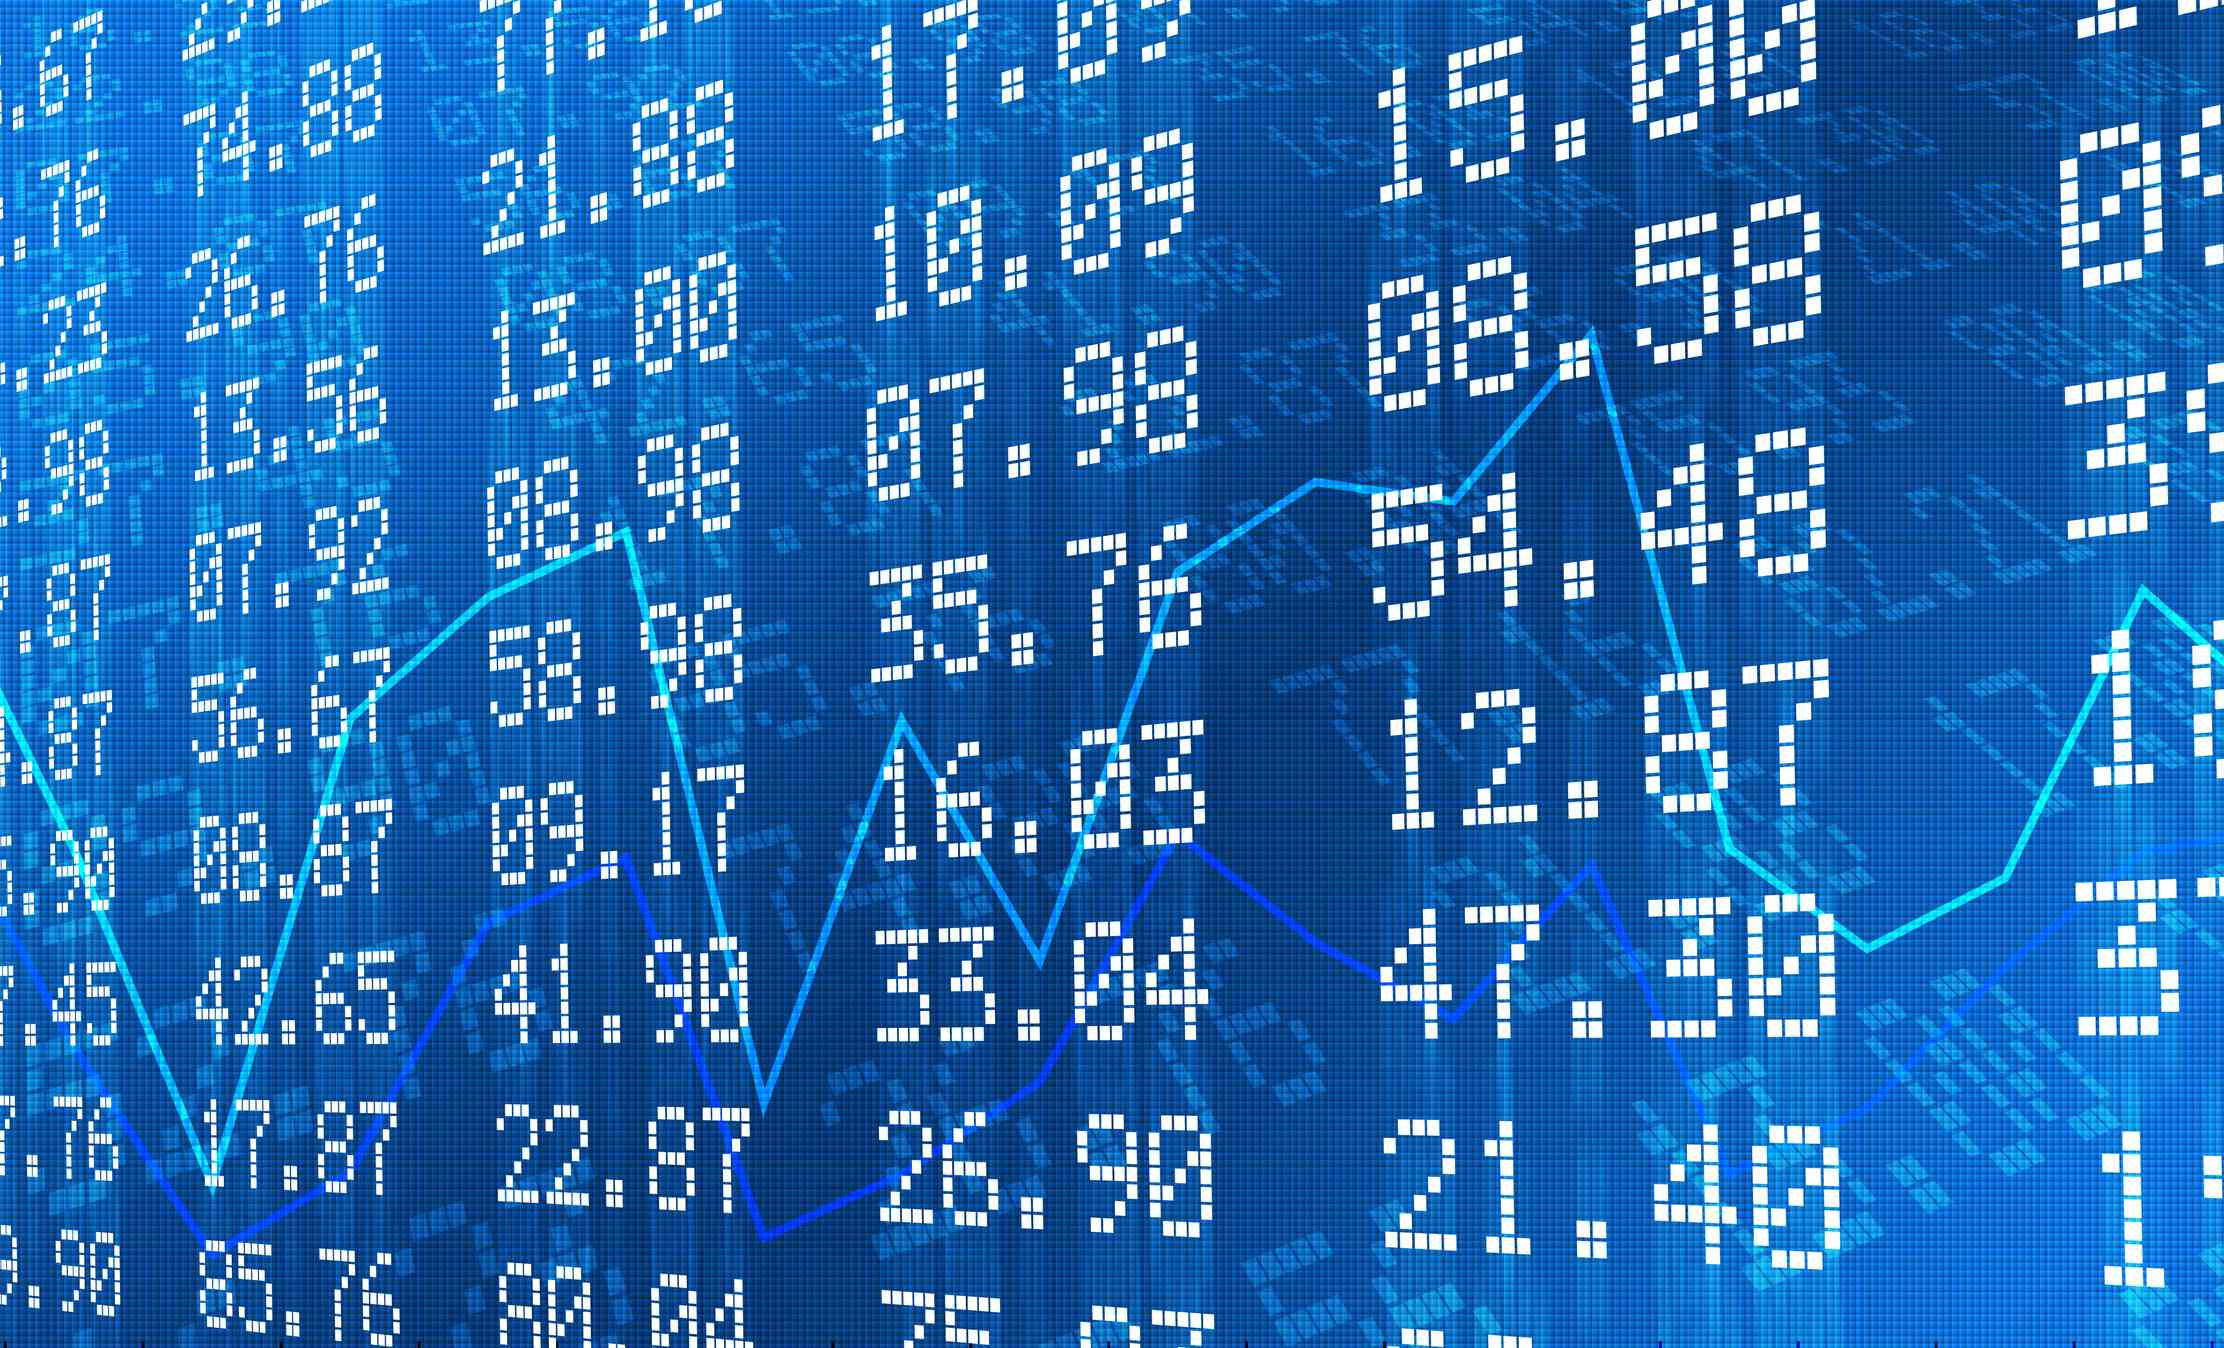 What Is a Stock Ticker?